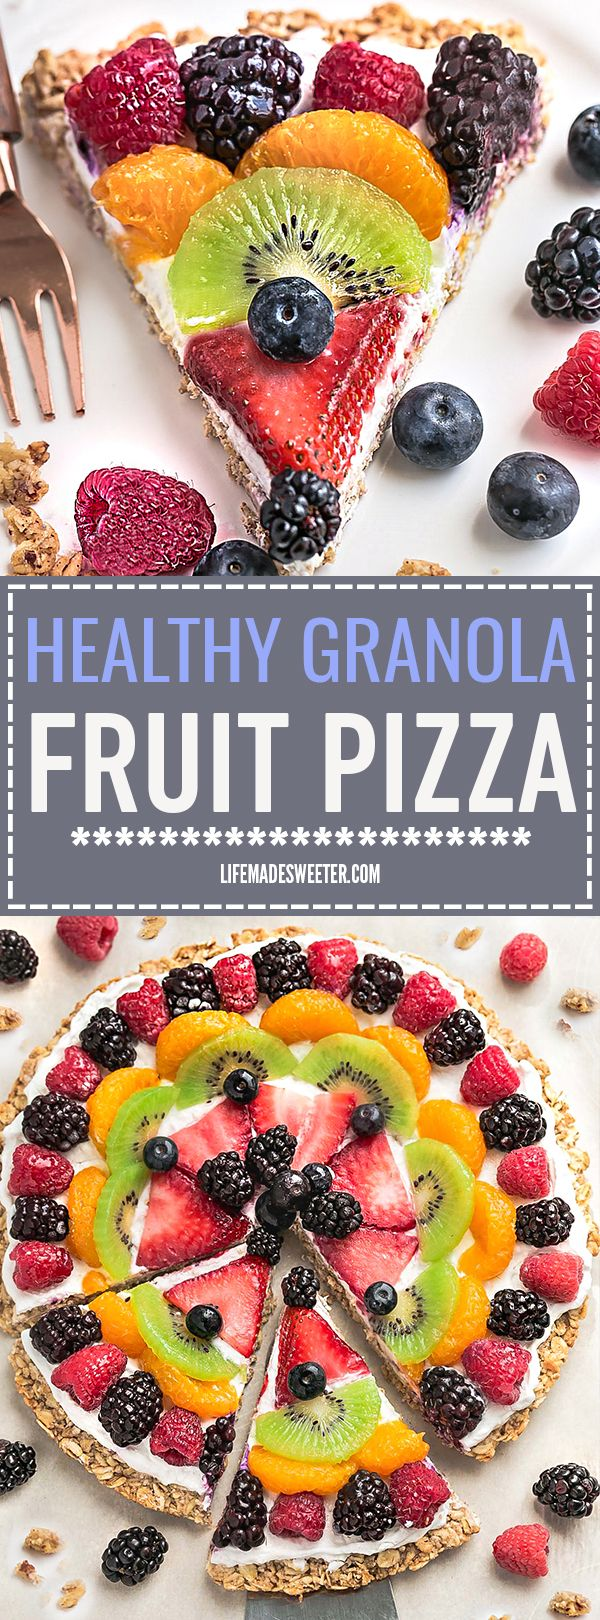 This Healthy Breakfast Fruit Pizza makes the perfect healthy and extra special breakfast, brunch or dessert. Best of all, it's so easy to make in less than 30 minutes with your favorite fresh fruit, a (Best Gluten Free Recipes)